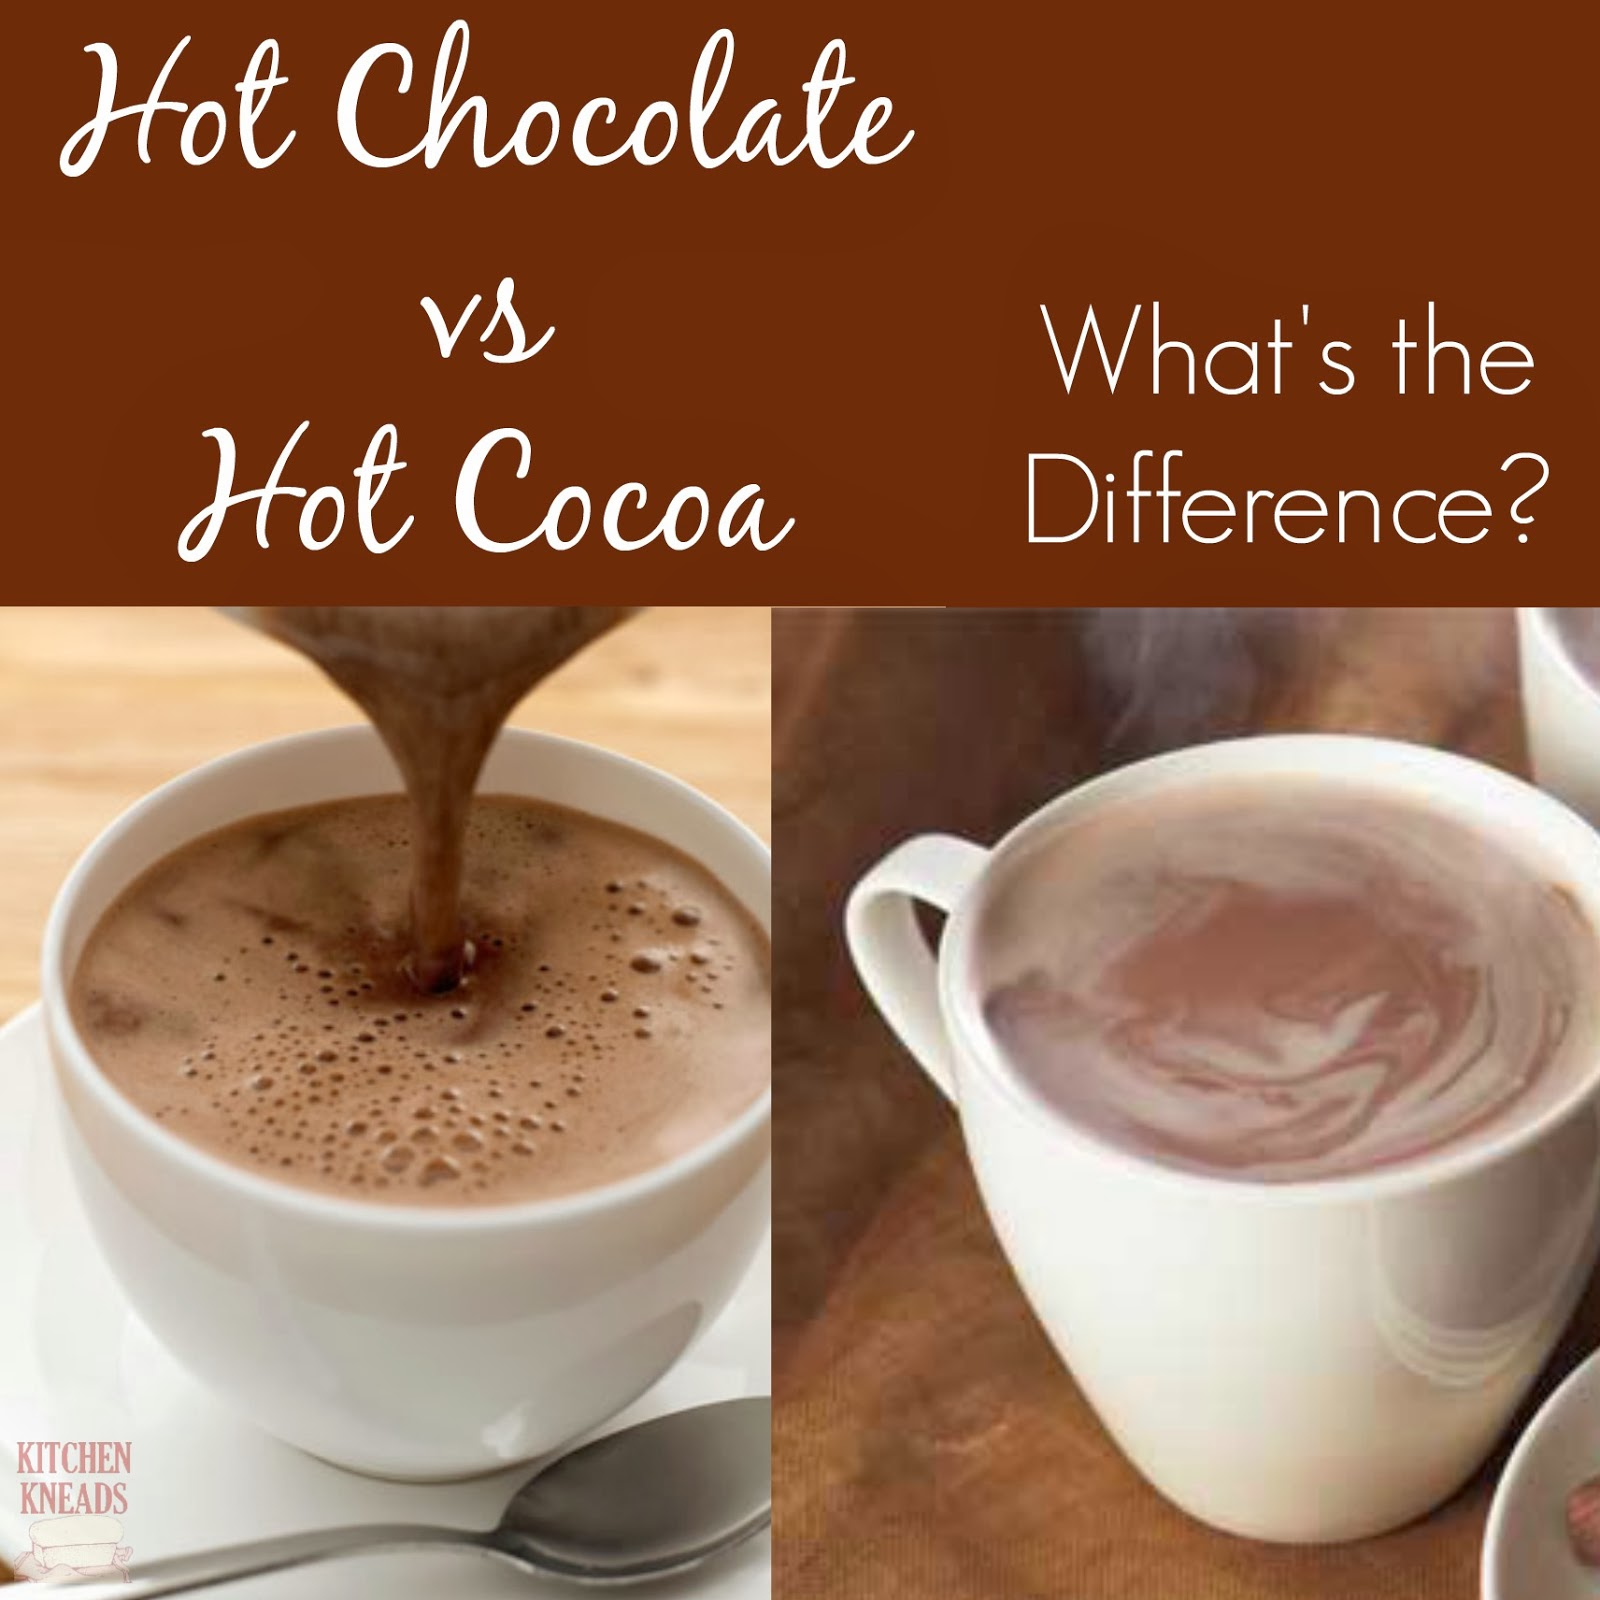 Hot chocolate from cocoa powder : How many calories in half an ...